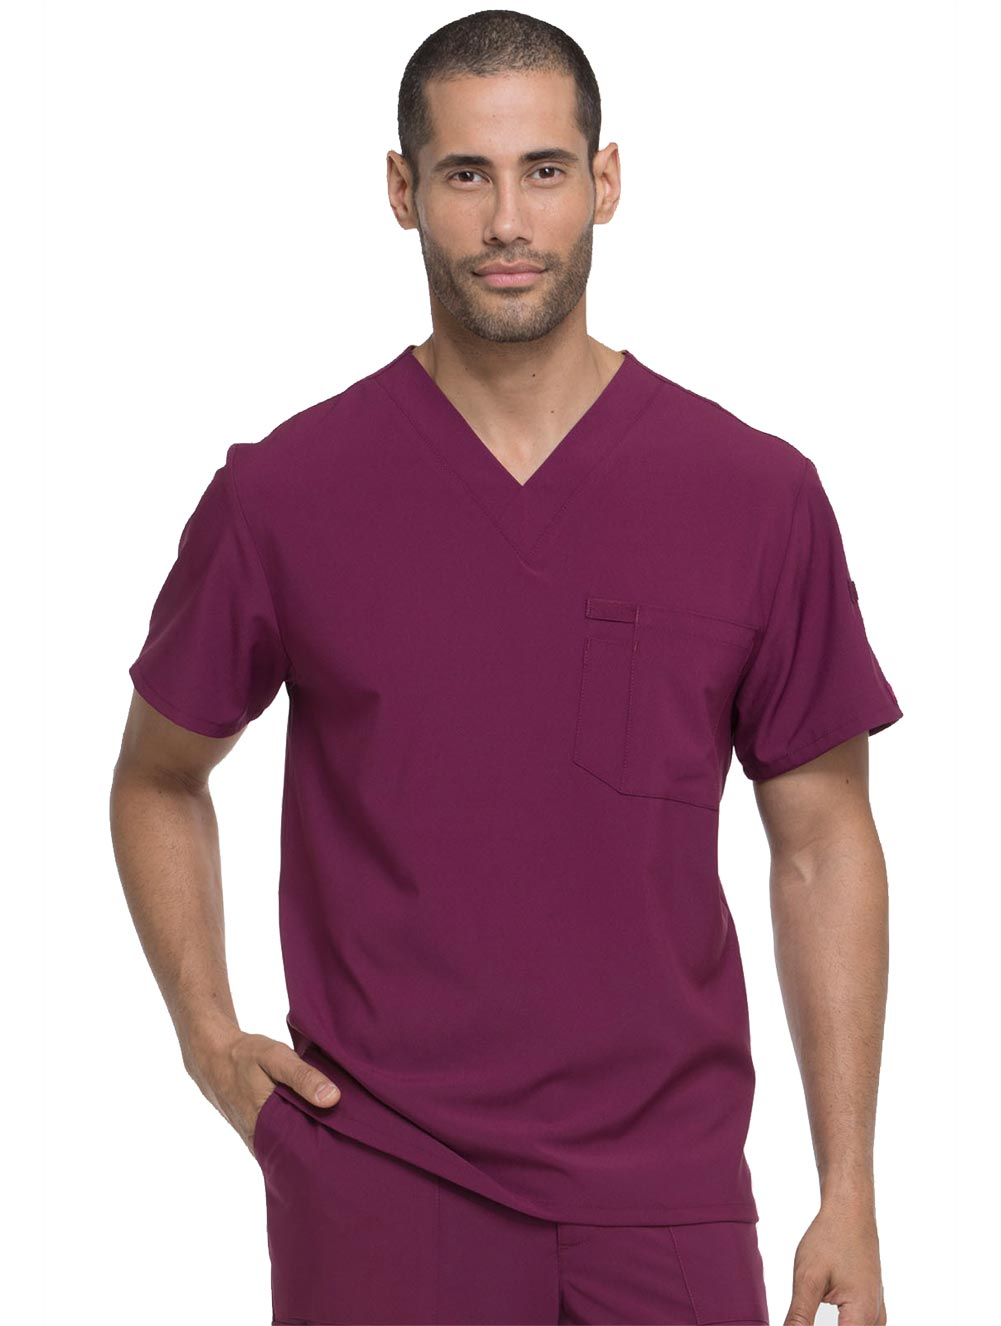 Men's V-Neck Top w/ Chest Pocket